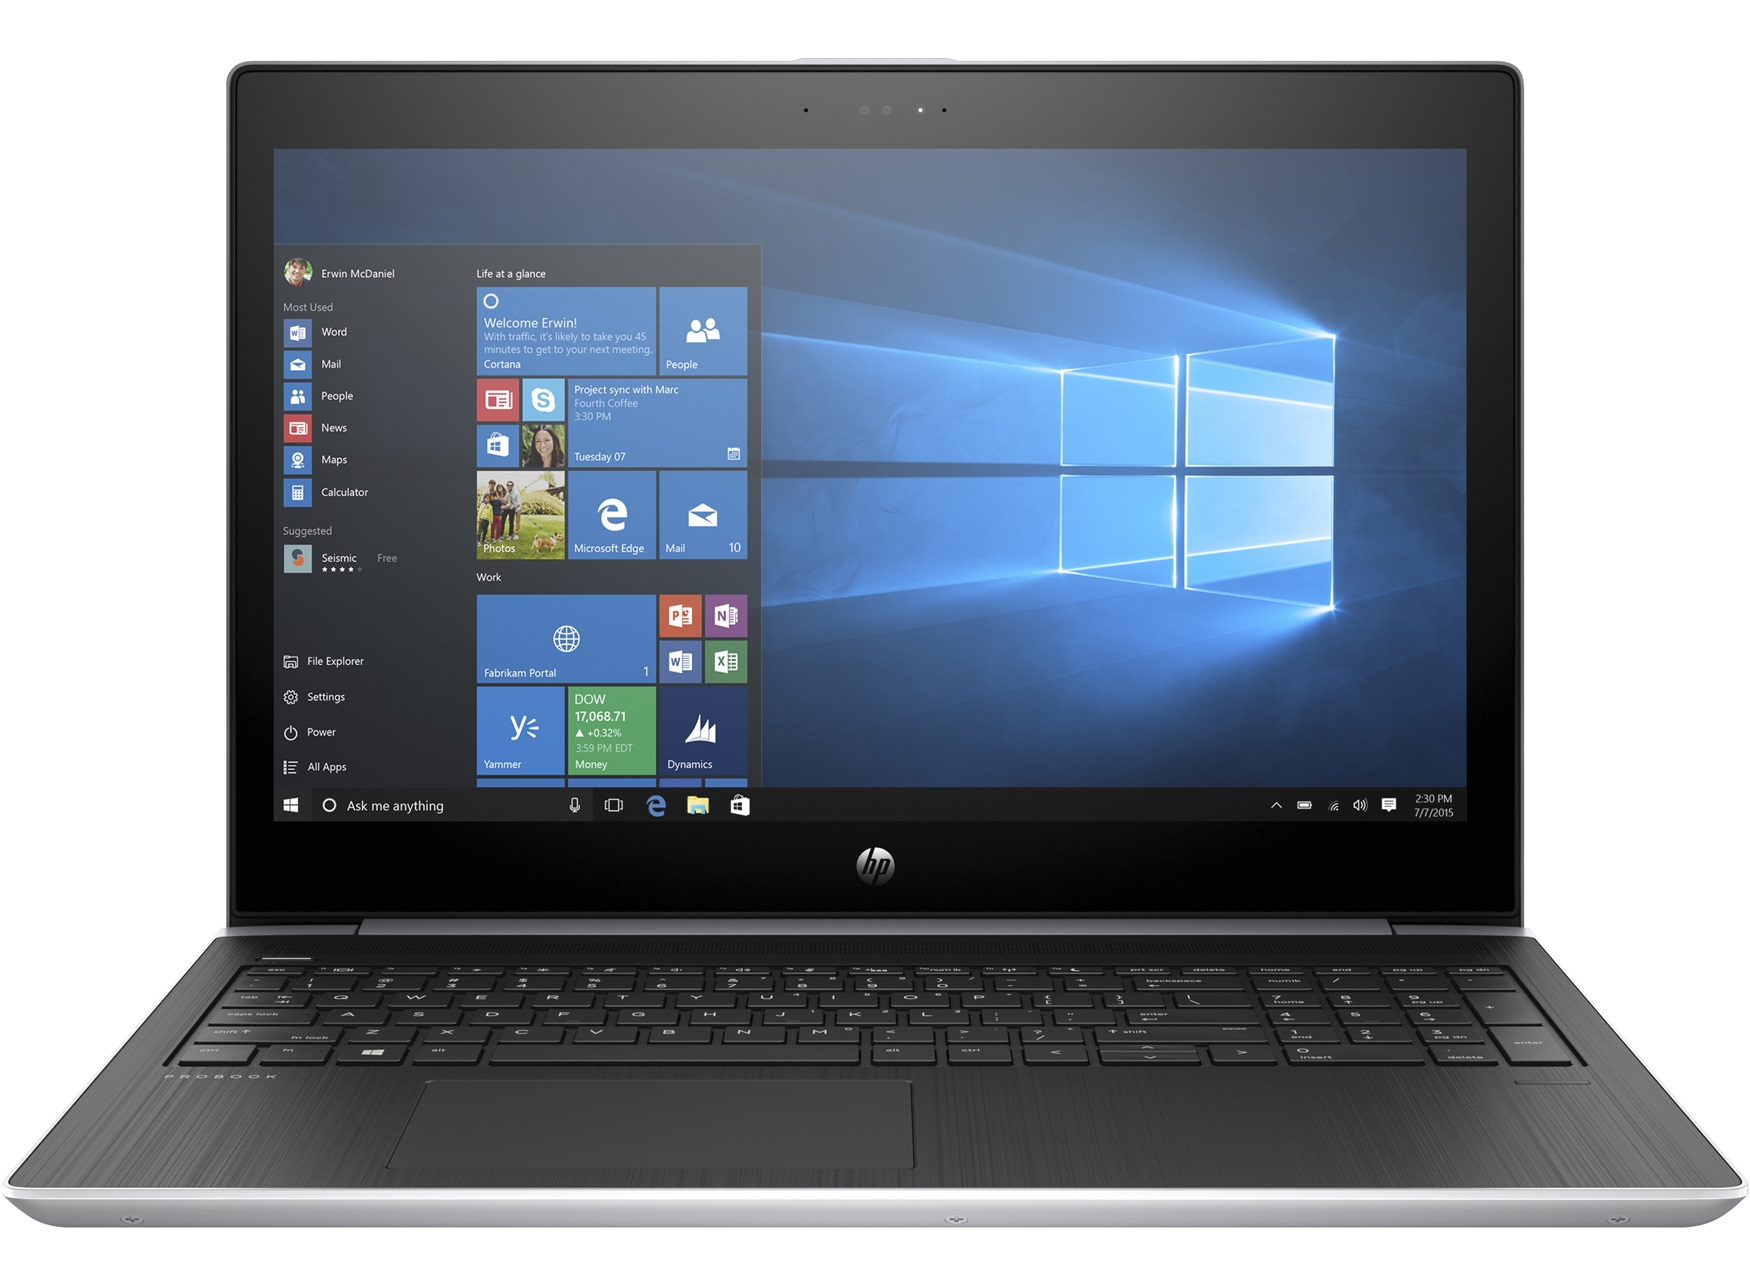 Laptop Hp Probook 450 Review